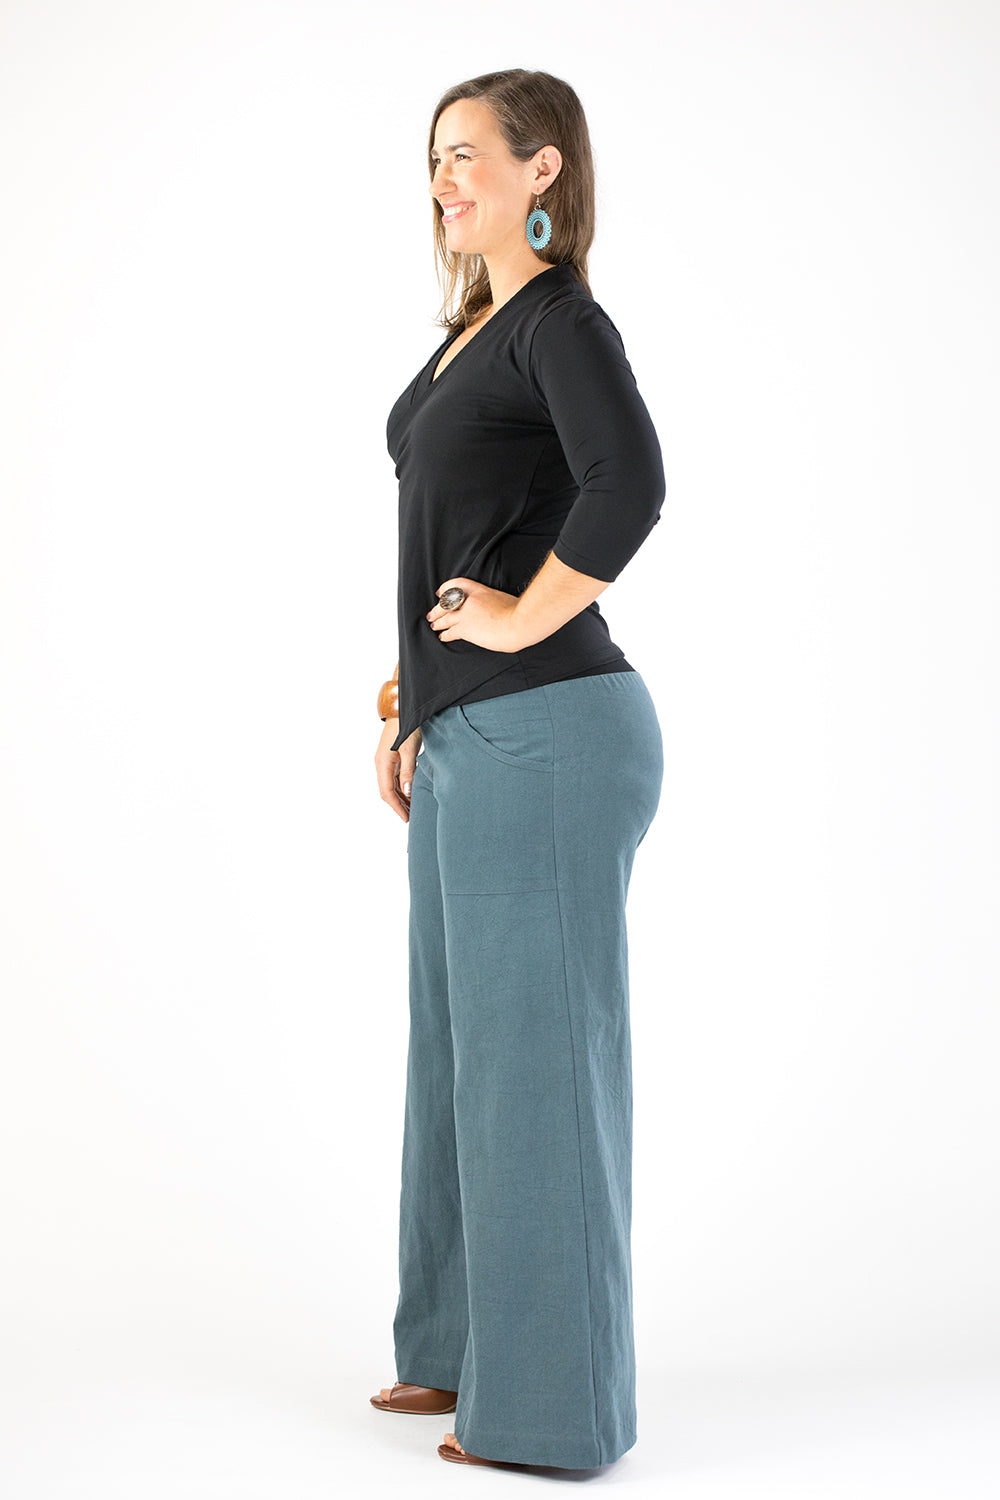 Sidewalk Pants - Dusty Teal Linen/Viscose (Lucky Last 16!)